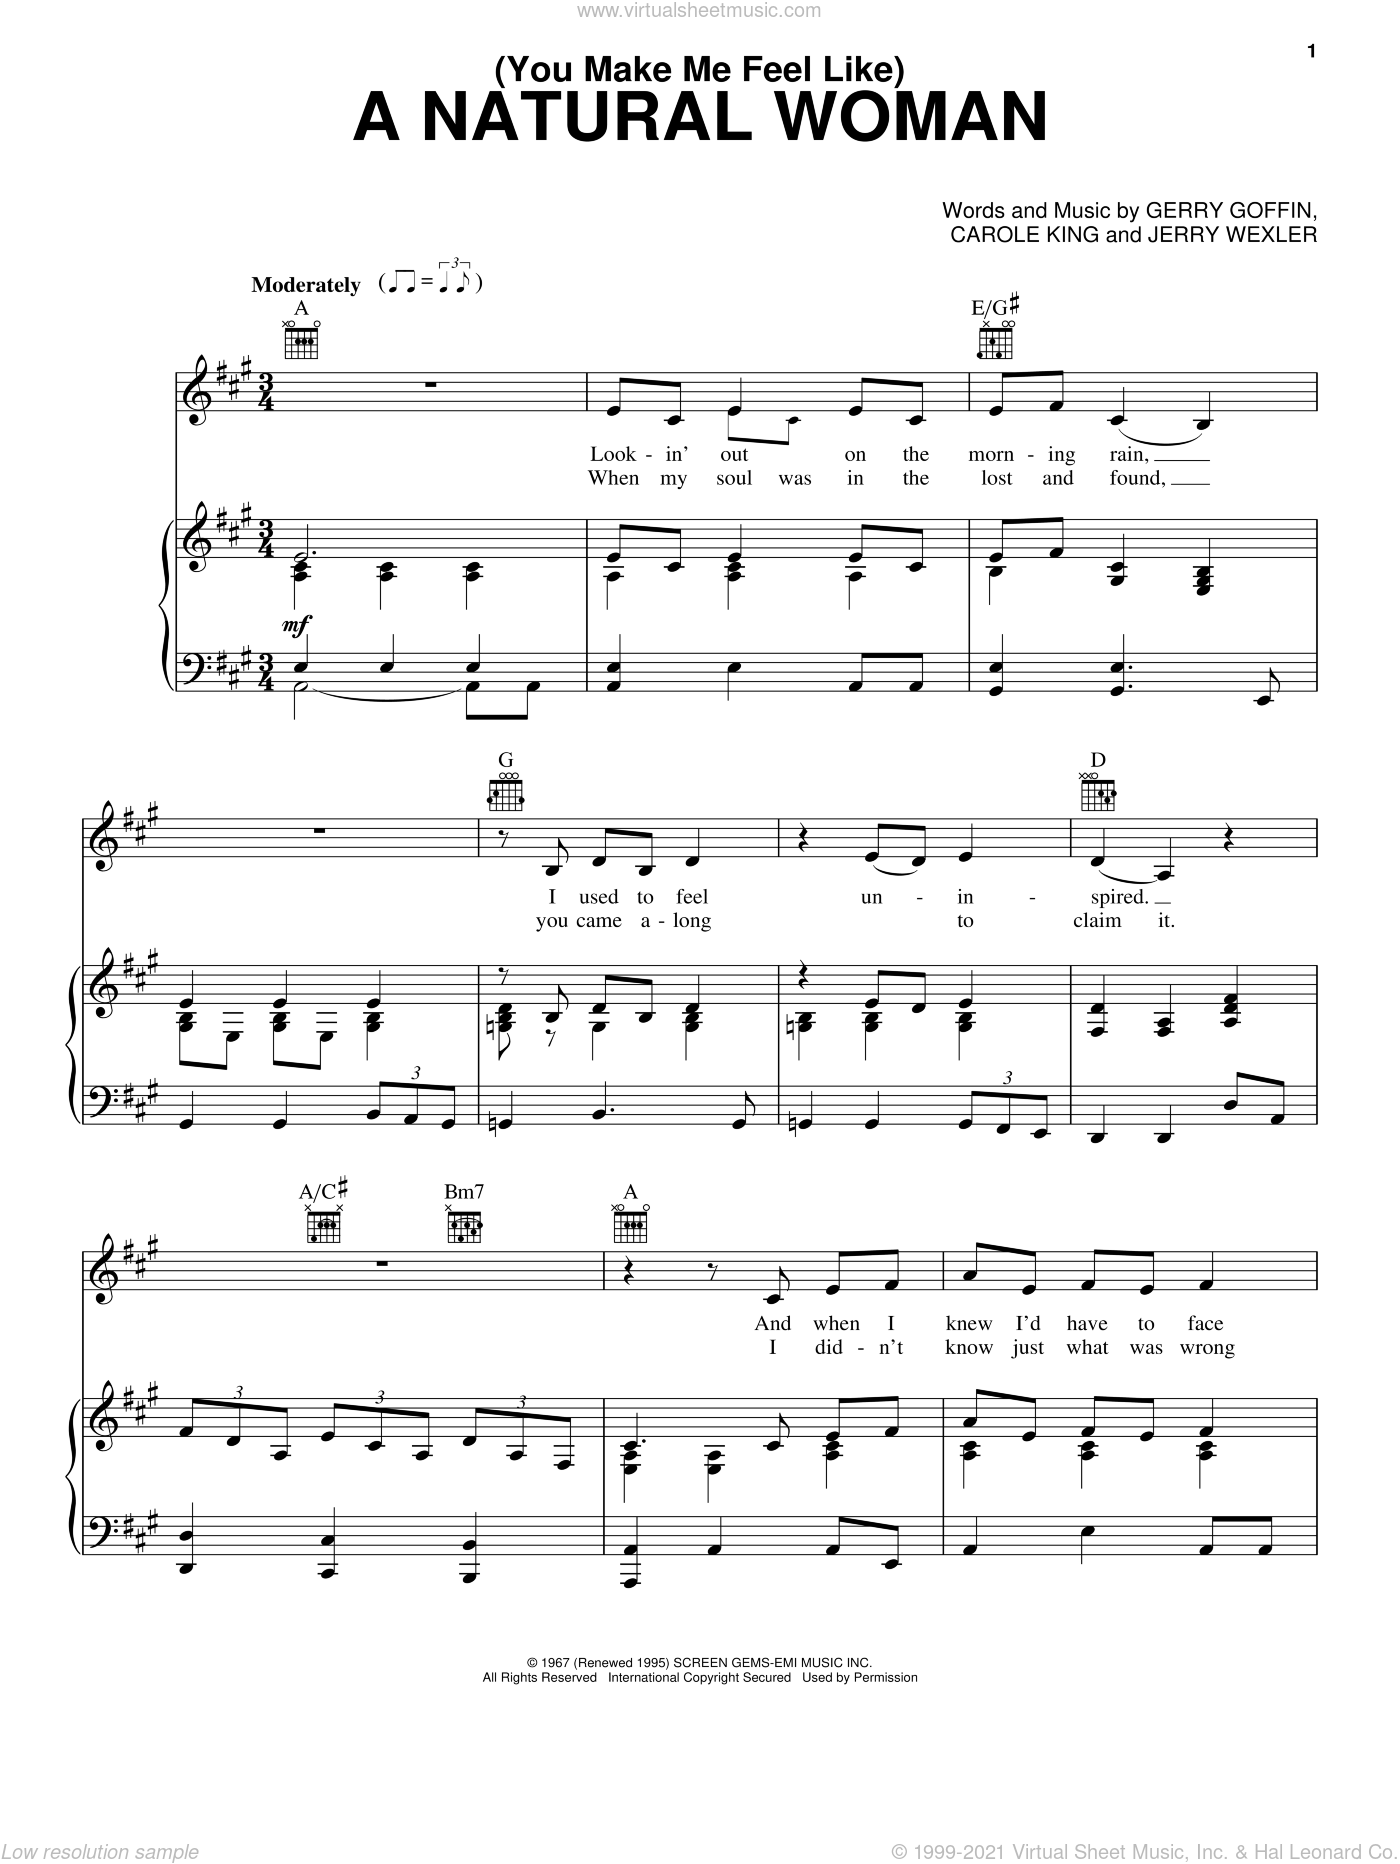 (You Make Me Feel Like) A Natural Woman sheet music for voice, piano or guitar by Aretha Franklin, Carole King, Gerry Goffin and Jerry Wexler, intermediate skill level